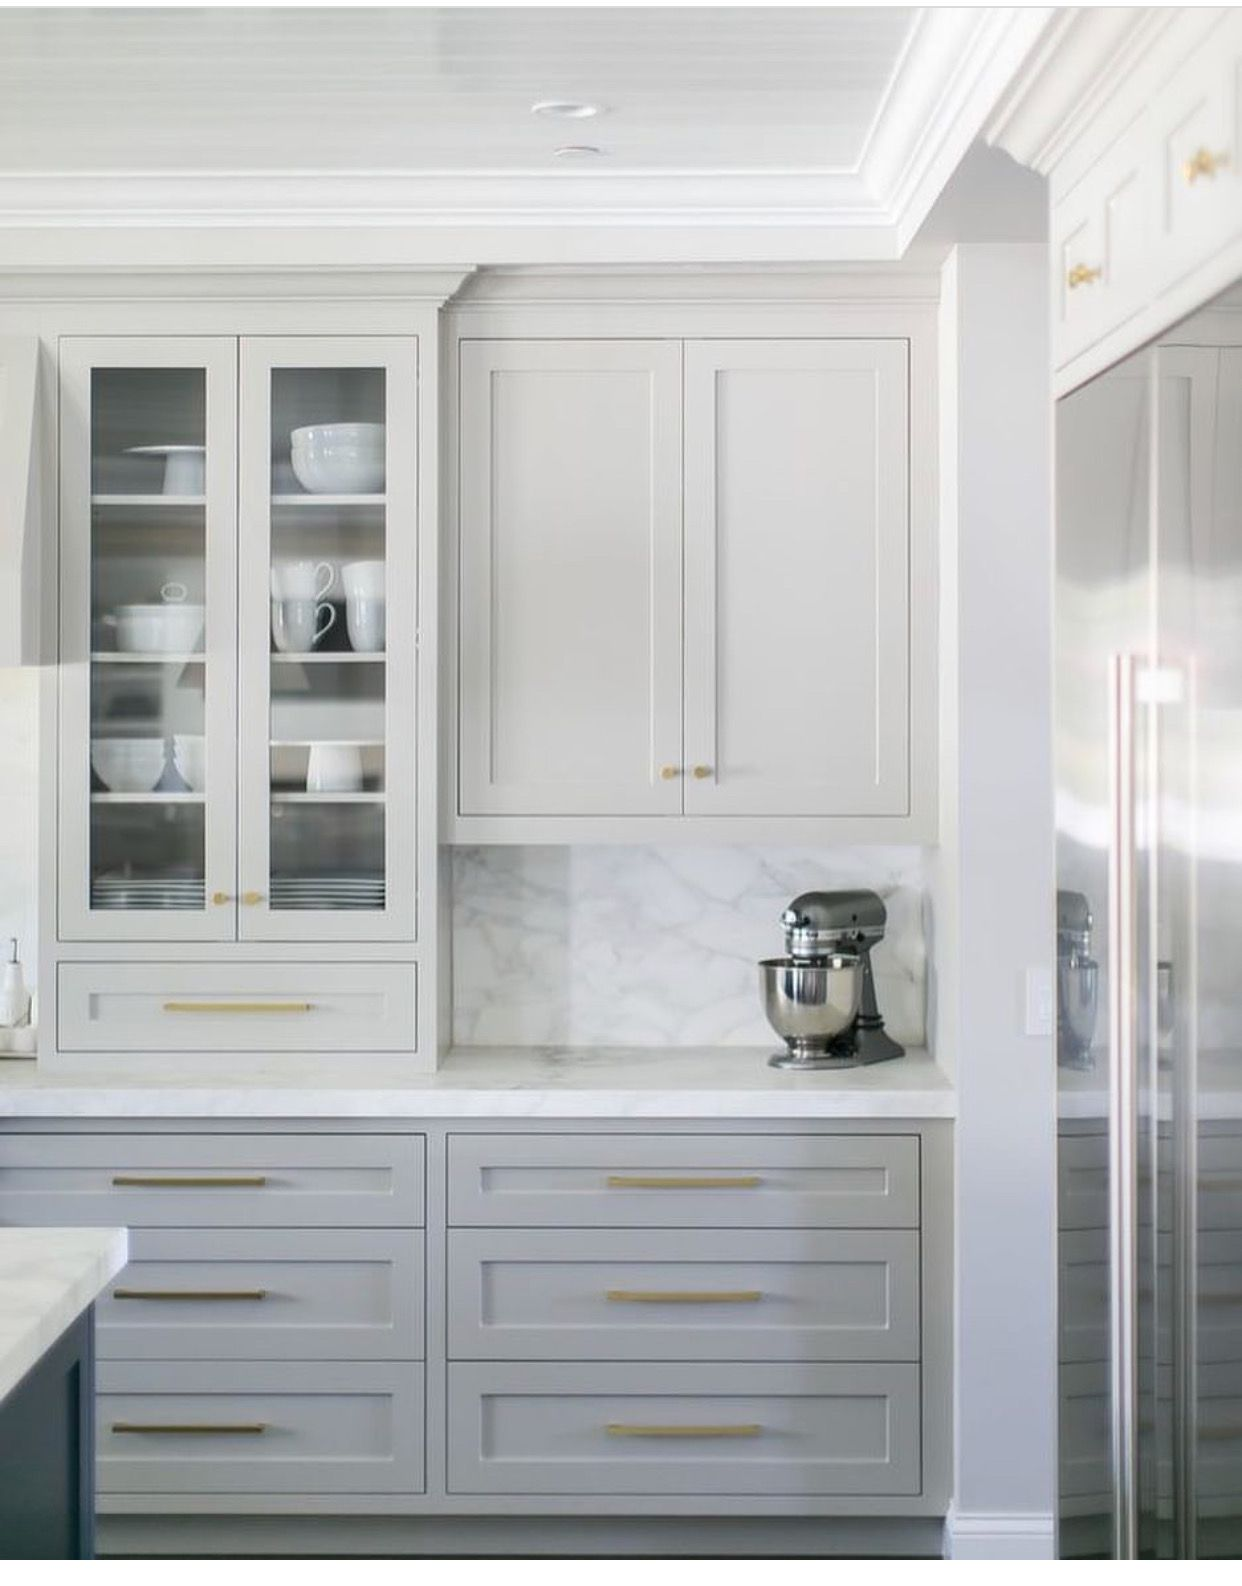 white kitchen cabinets with glass doors high gloss like the layout of full cabinet to counter next half which creates space for applicances toaster oven style and placement